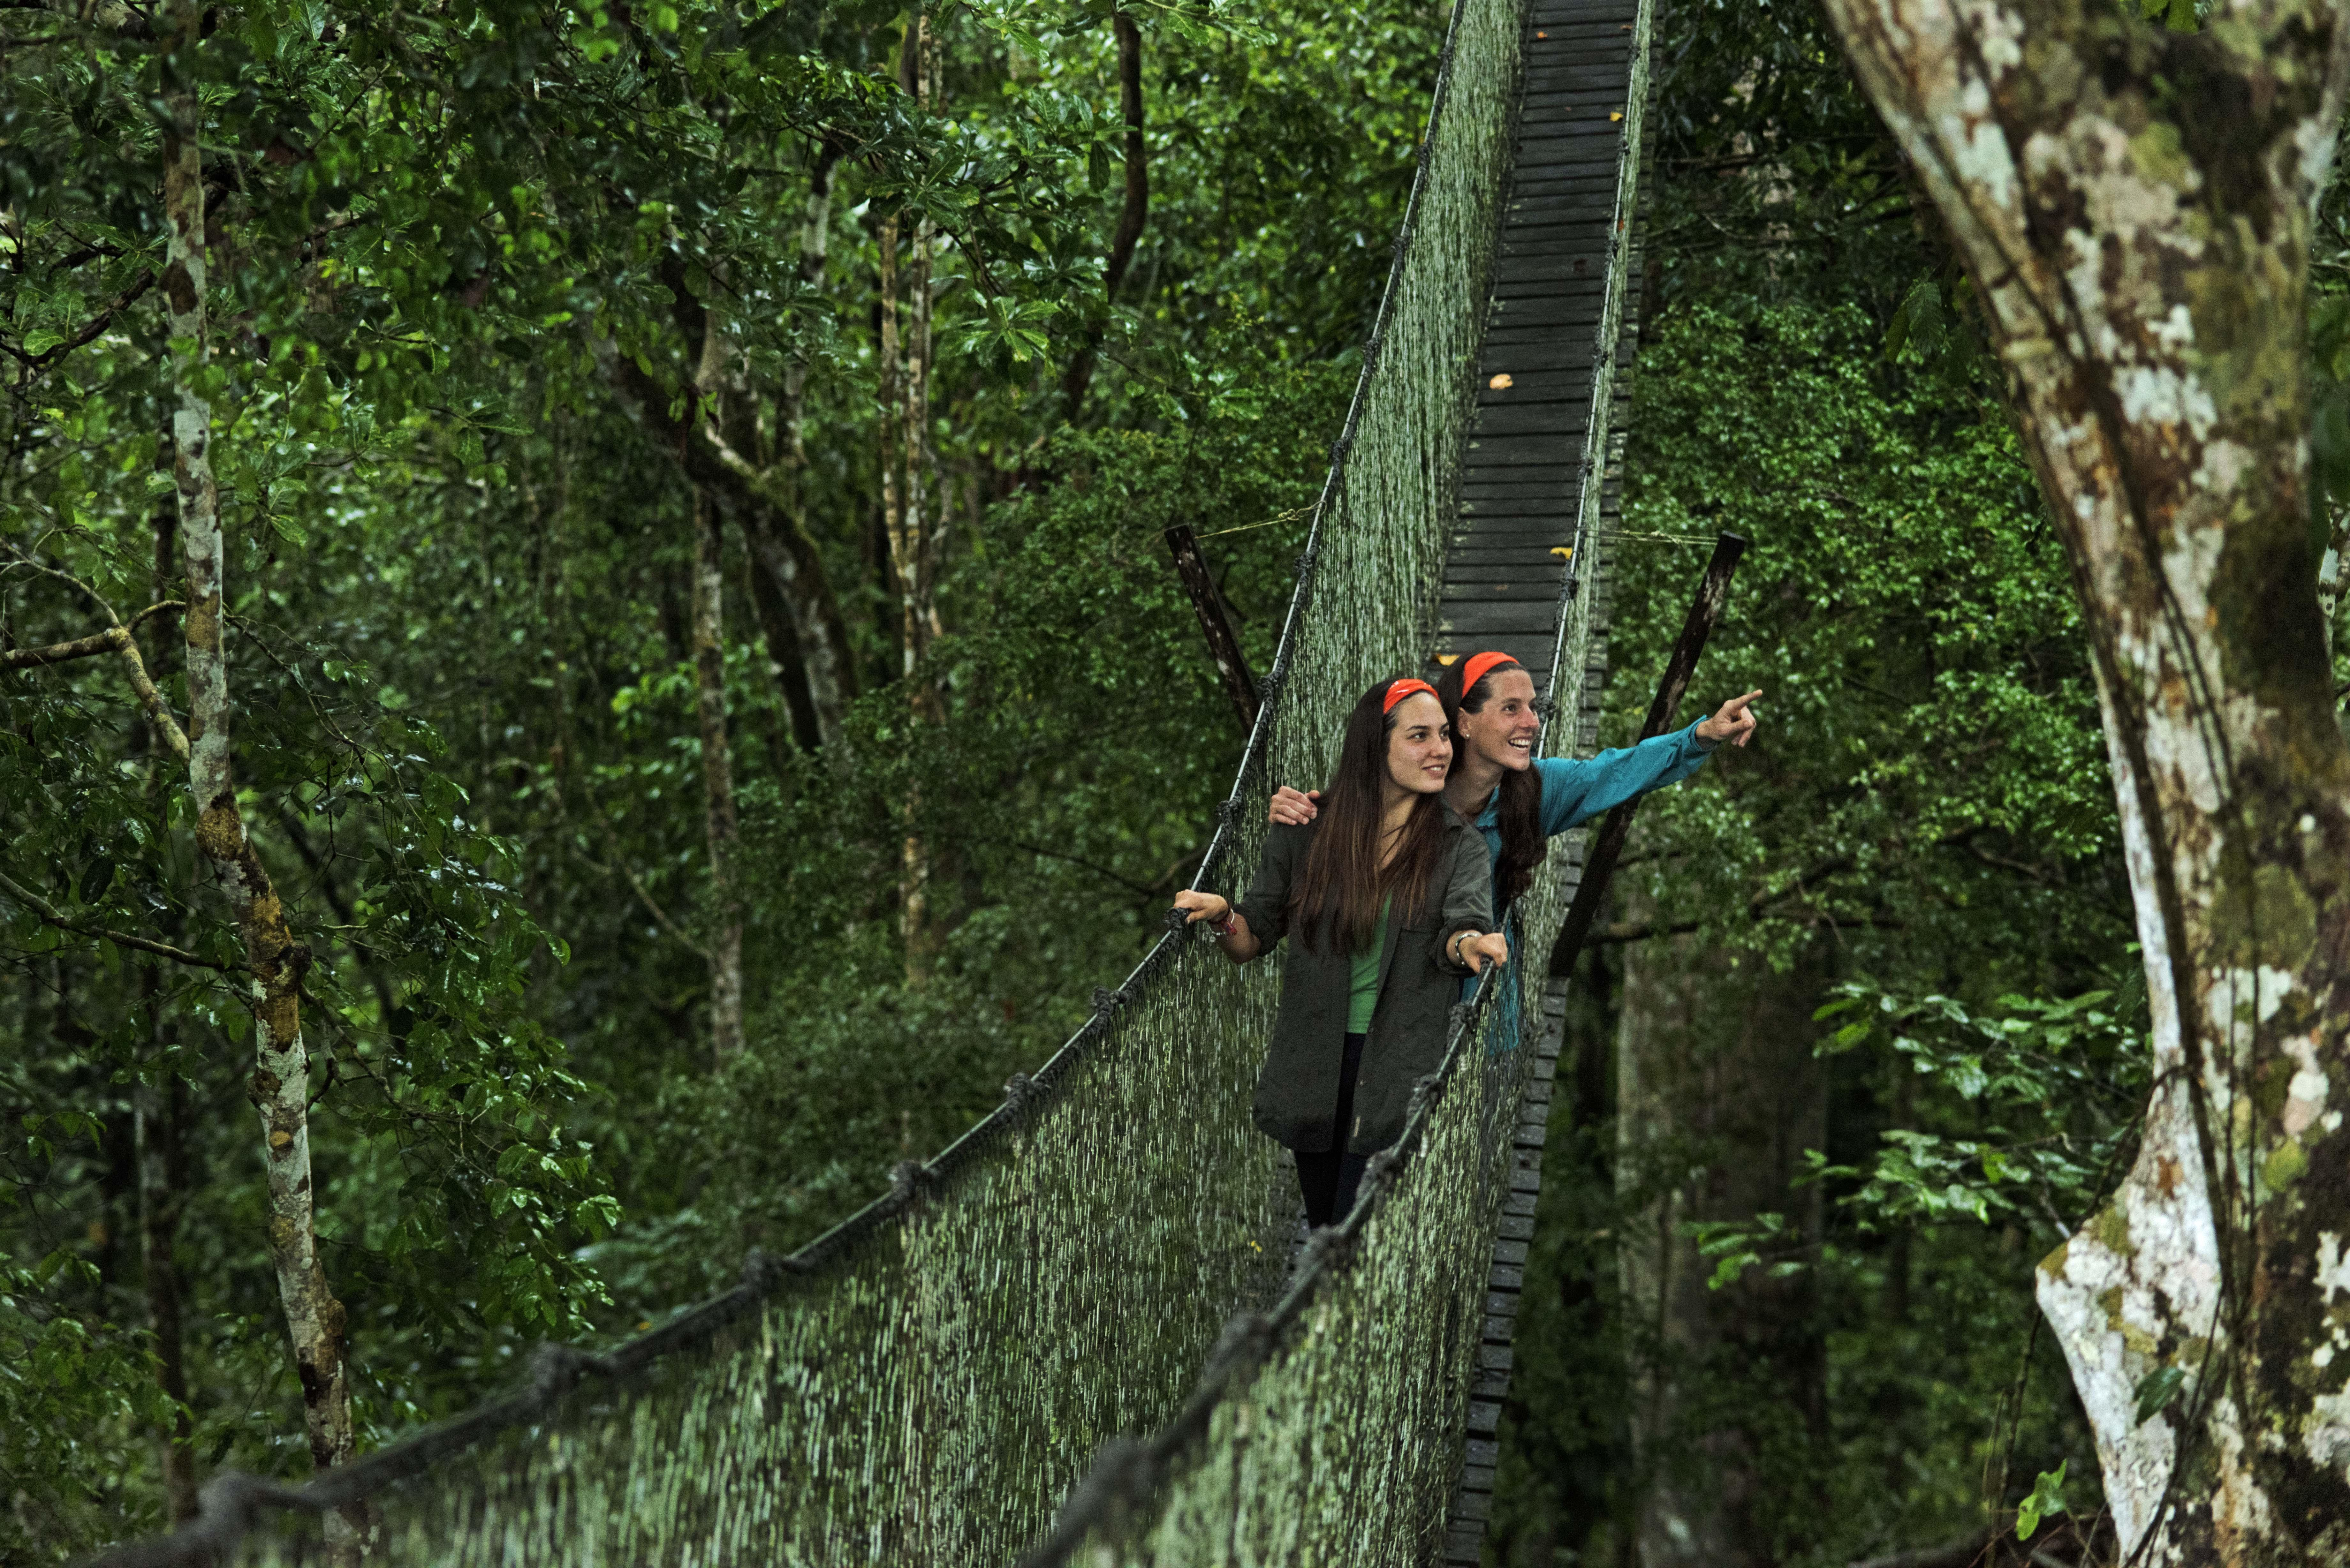 Couple on canopy walkway suspension bridge looking out to treetops